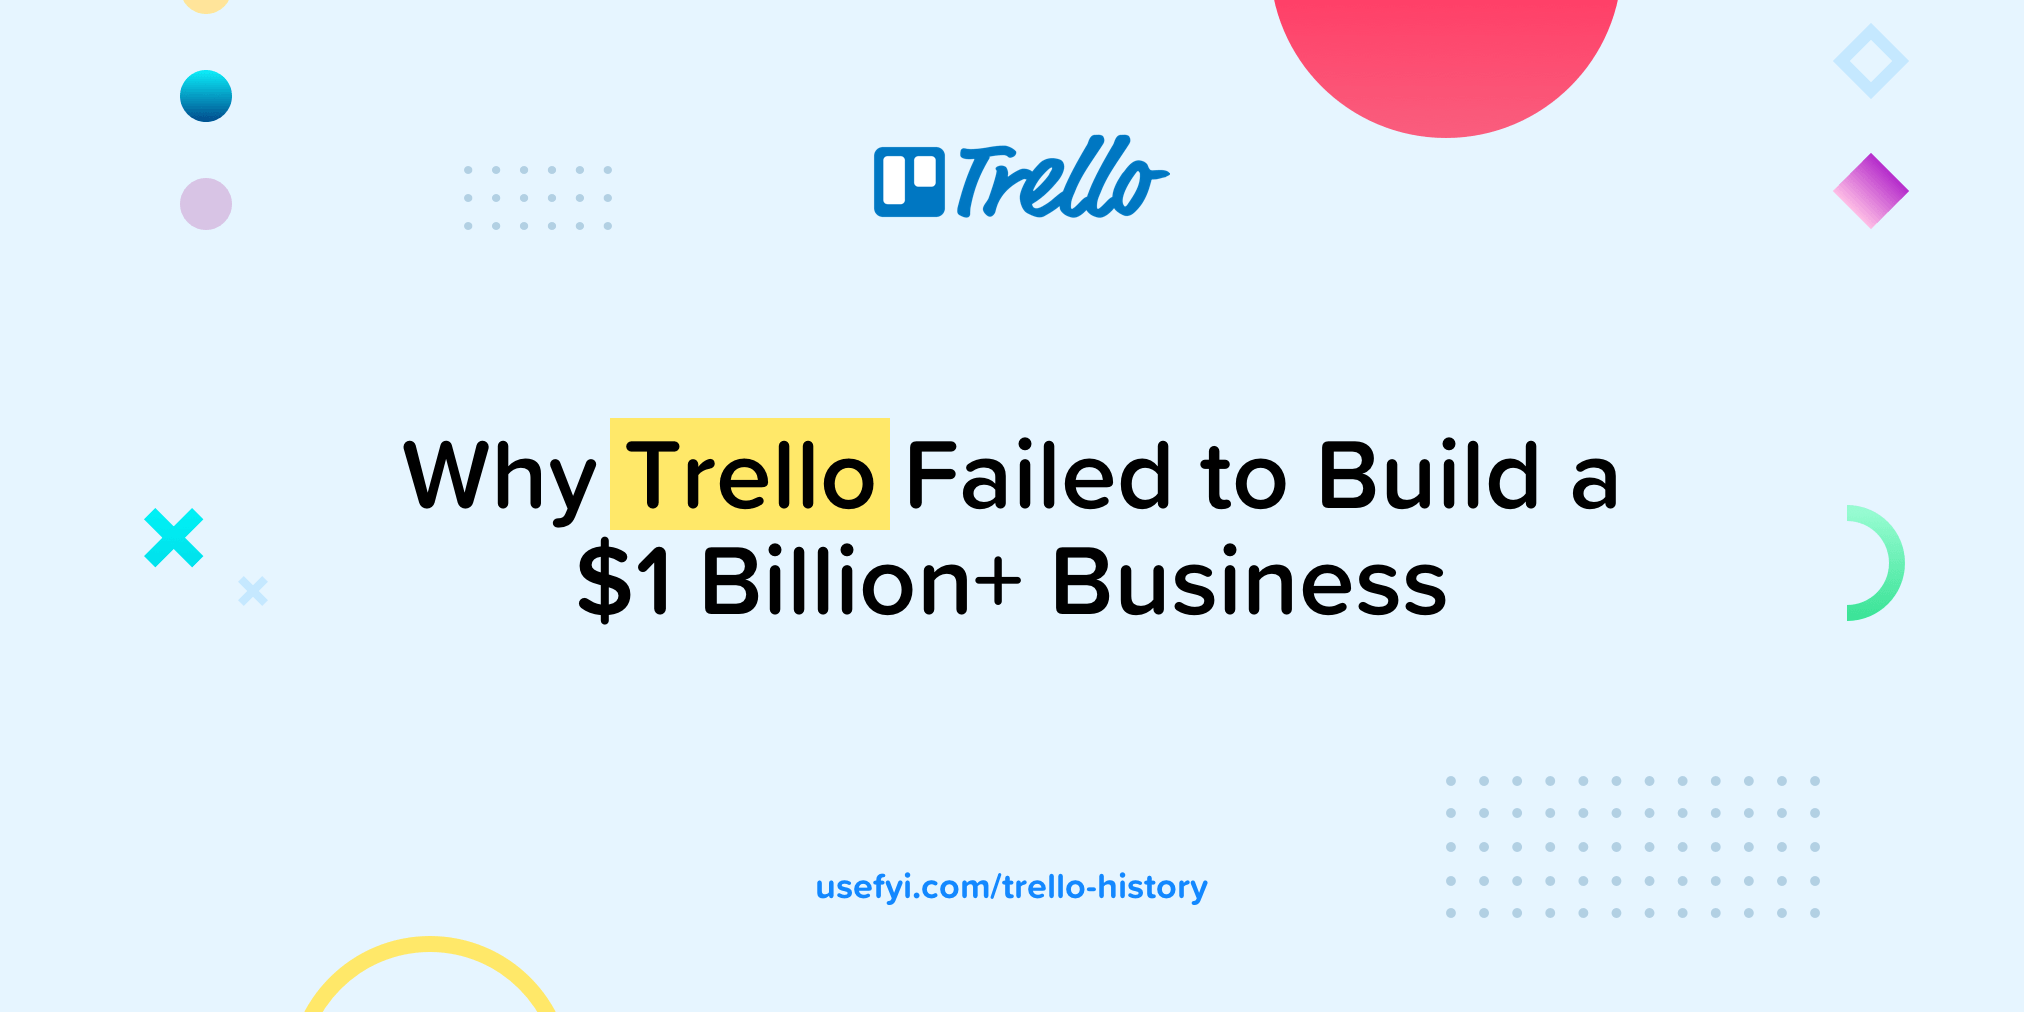 Why Trello Failed to Build a $1 Billion+ Business [The Full